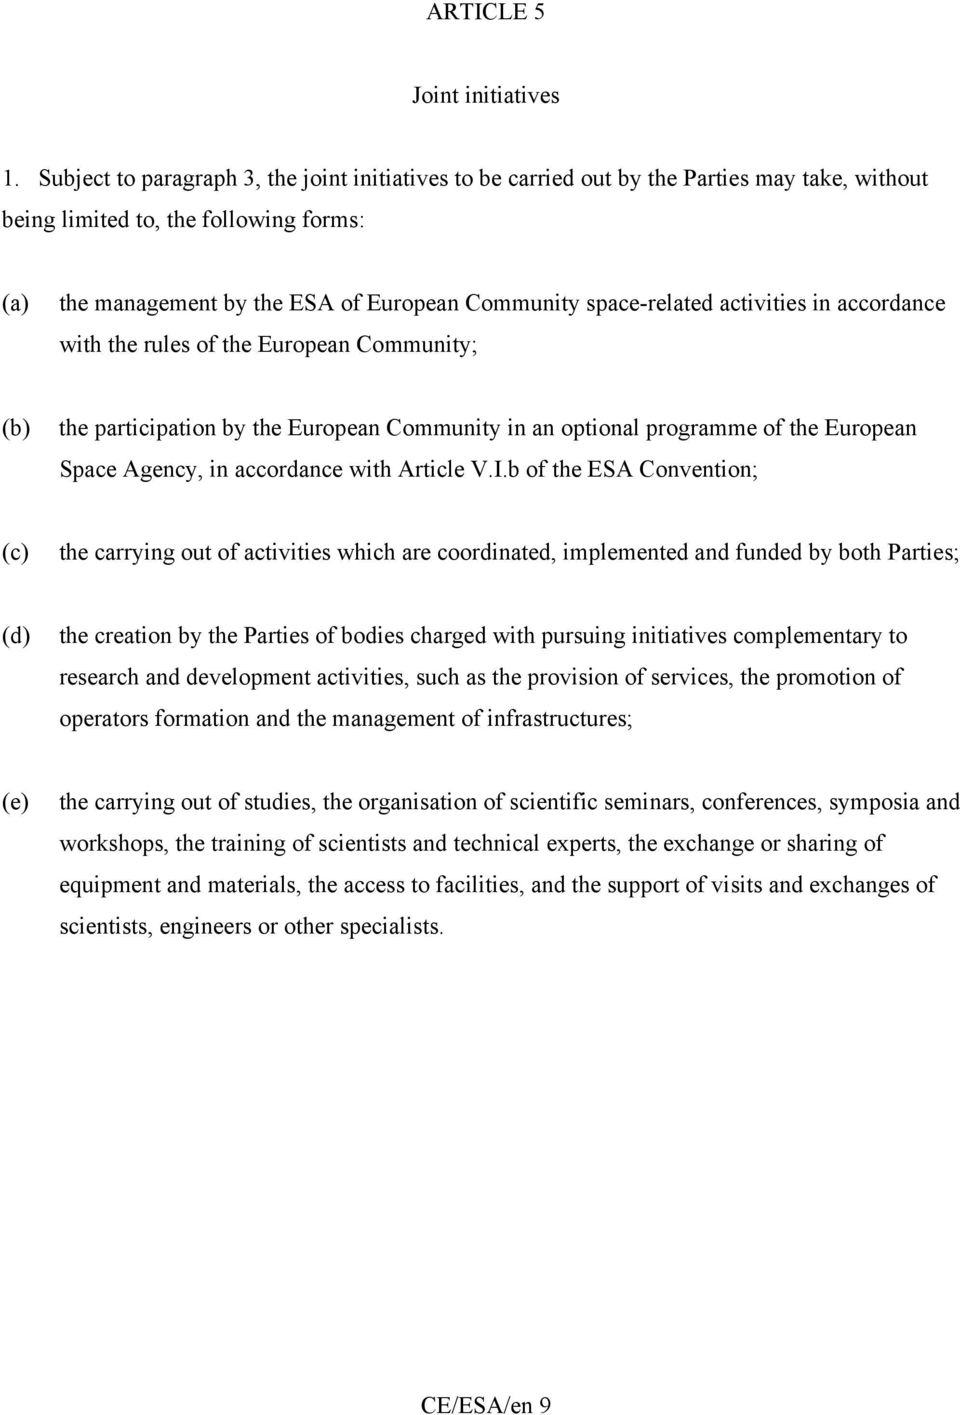 space-related activities in accordance with the rules of the European Community; (b) the participation by the European Community in an optional programme of the European Space Agency, in accordance